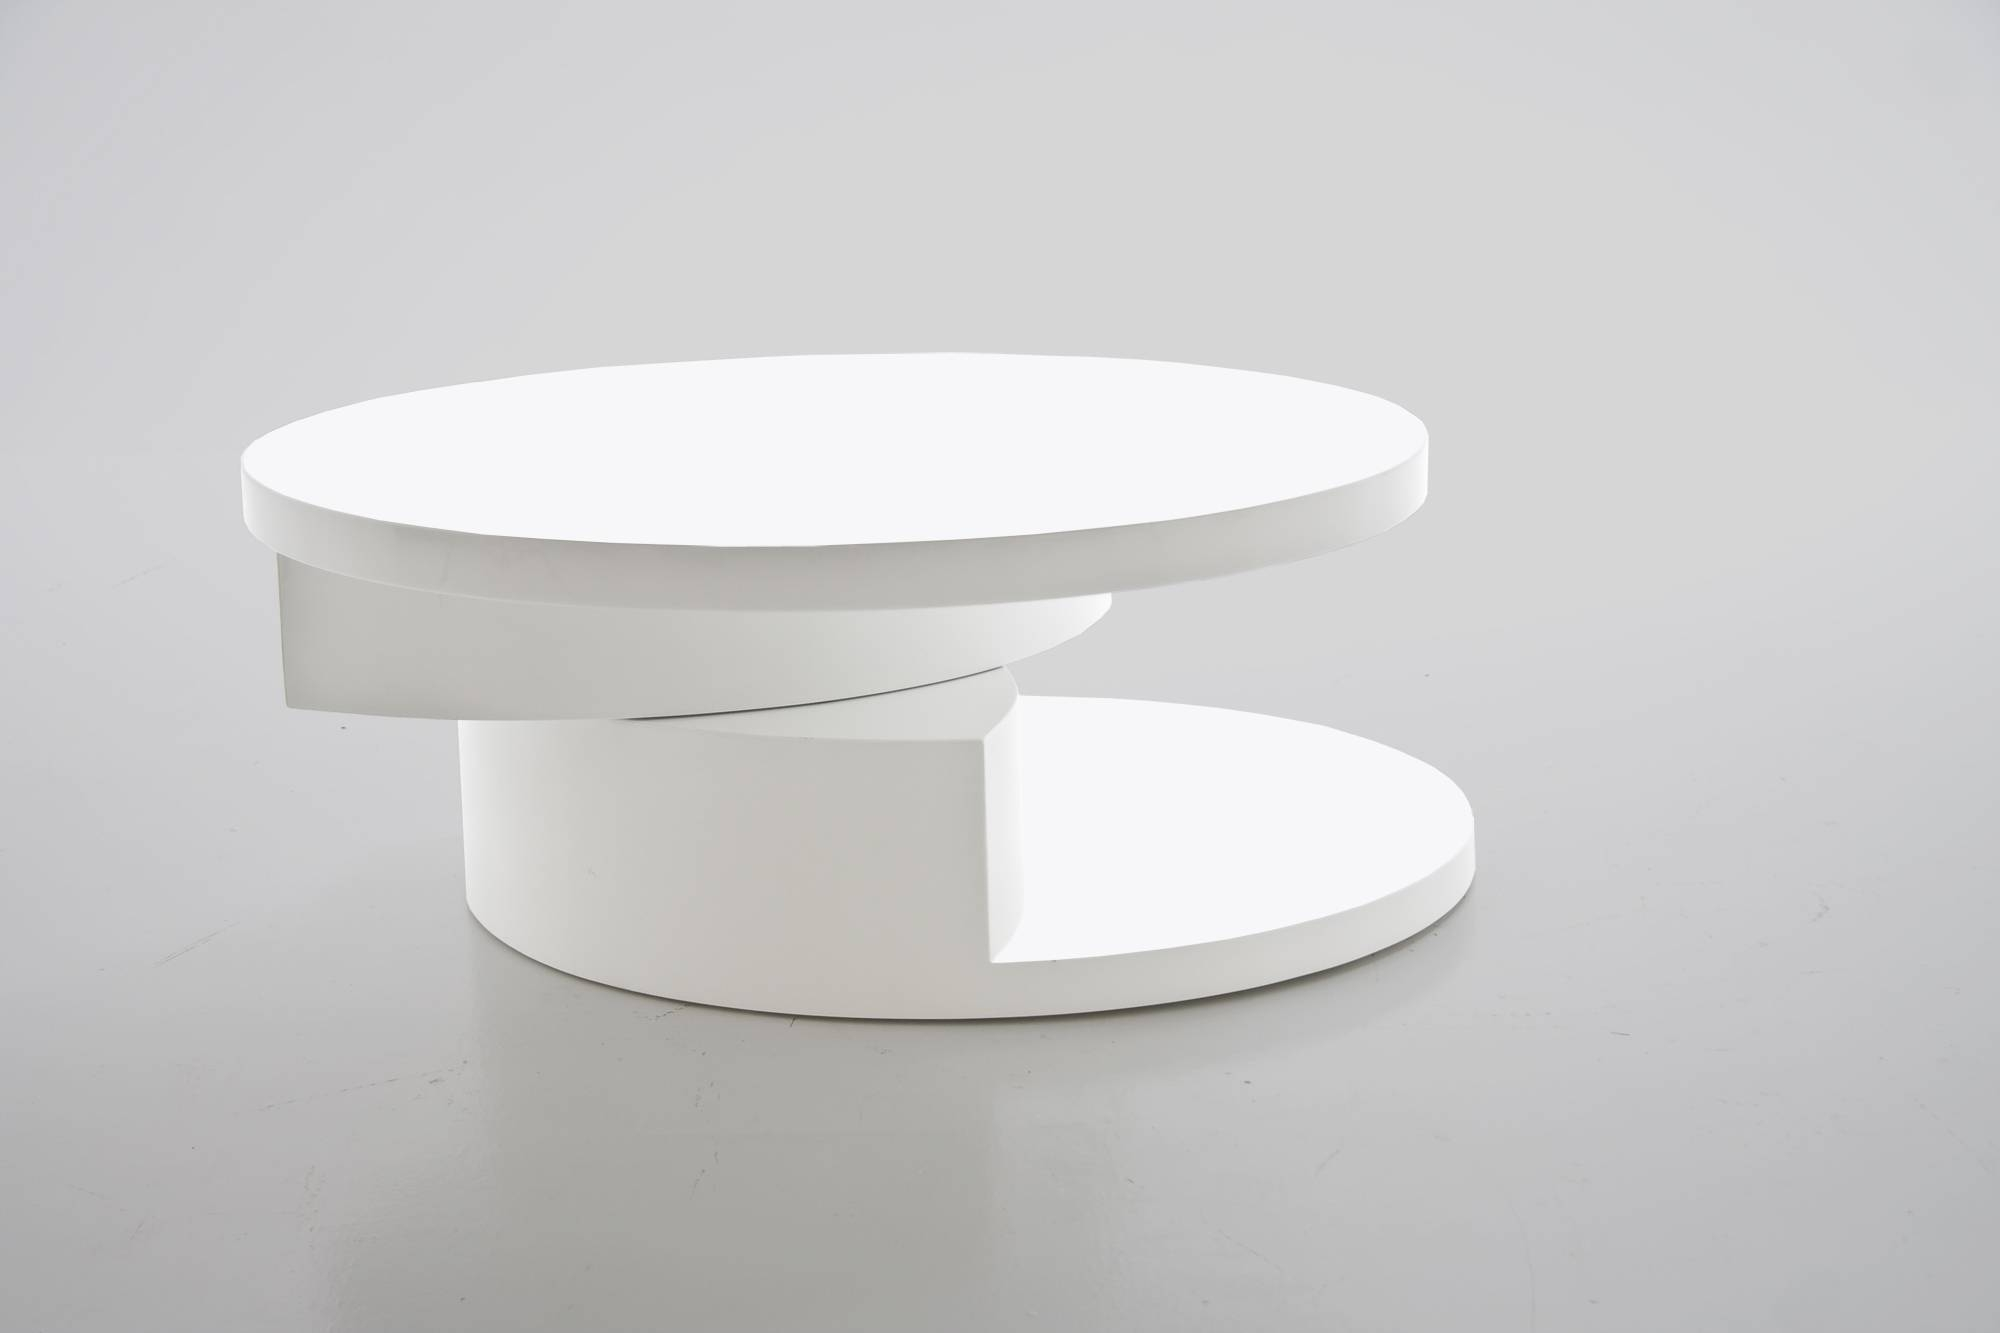 Small White Coffee Table With Storage - Missionportland regarding White Coffee Tables With Storage (Image 22 of 30)